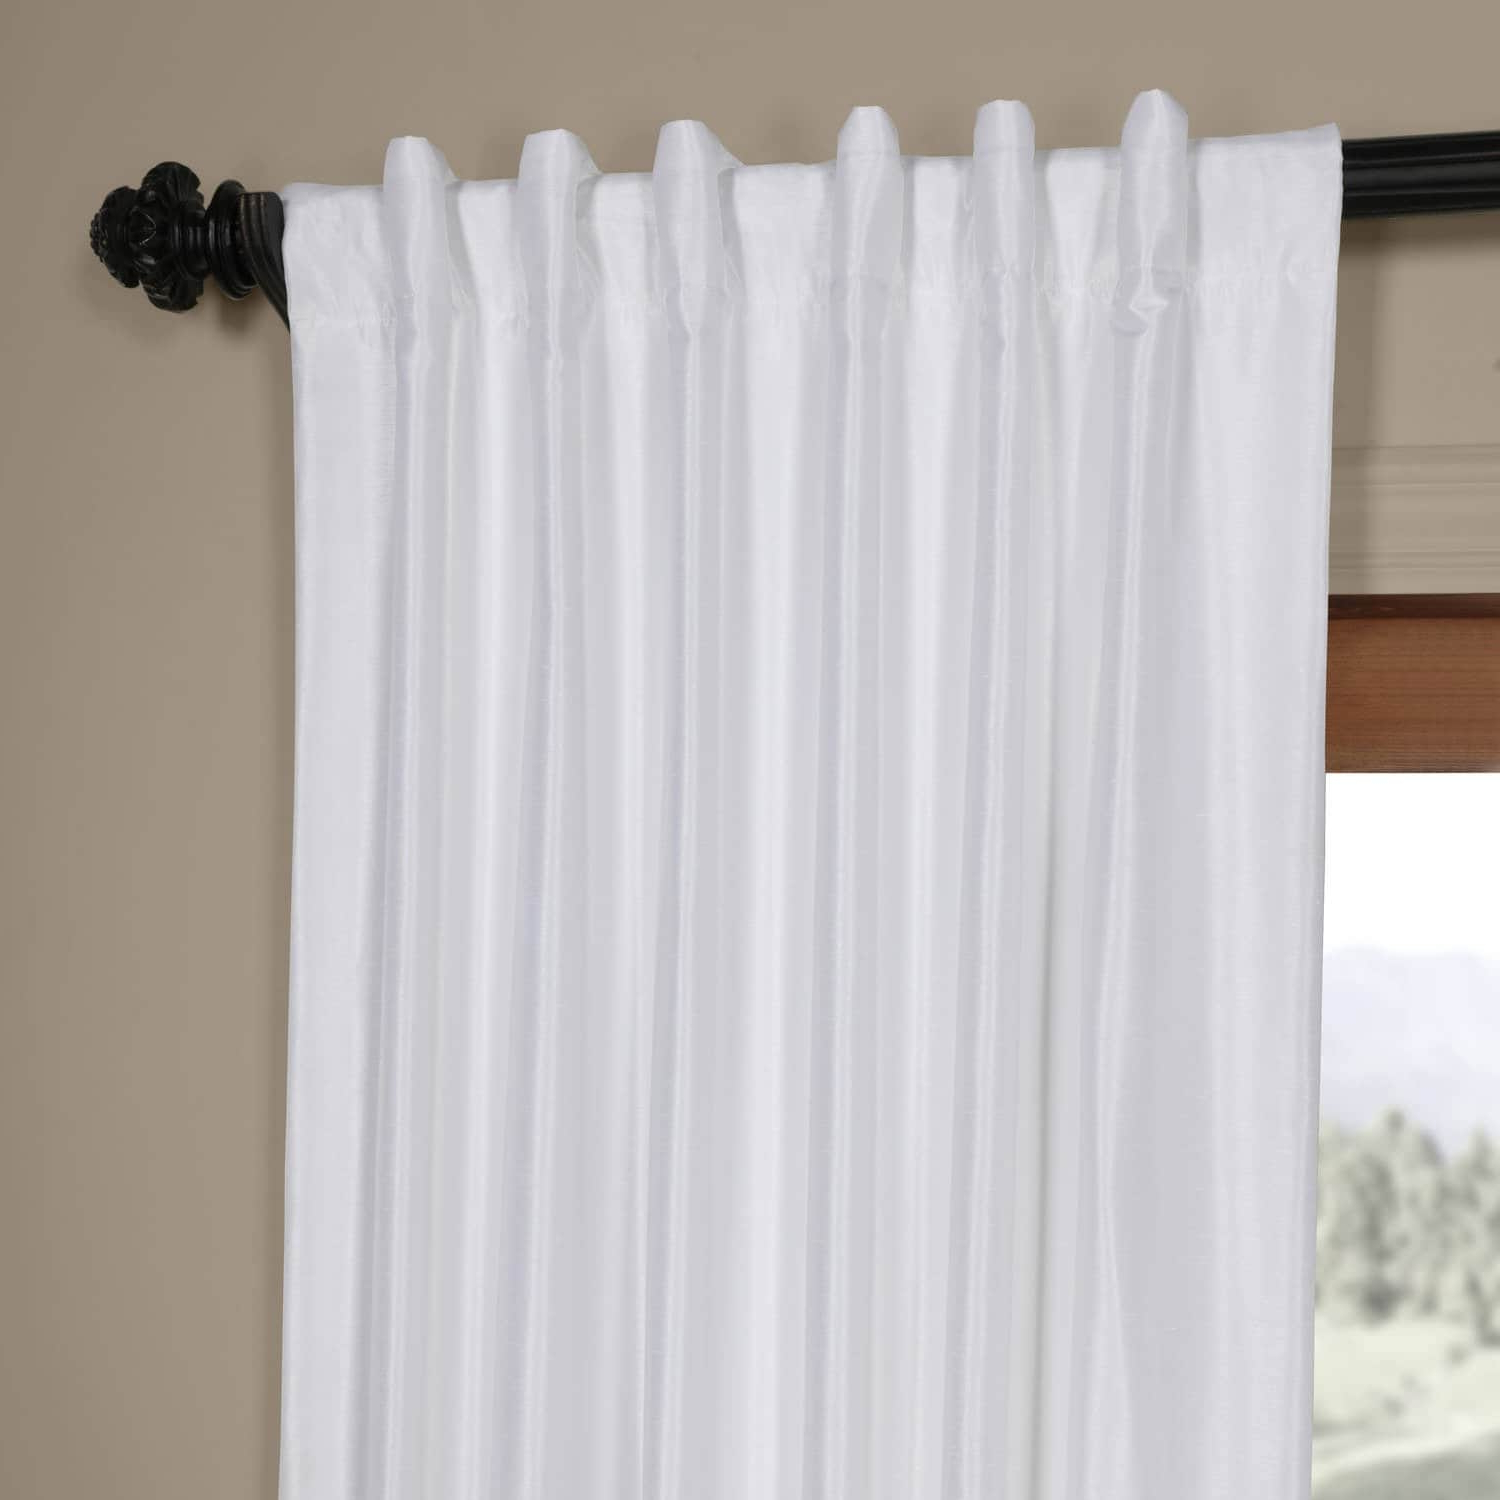 2020 Exclusive Fabrics Ice White Vintage Faux Textured Dupioni Silk 108L Curtain  Panel For Off White Vintage Faux Textured Silk Curtains (View 2 of 20)